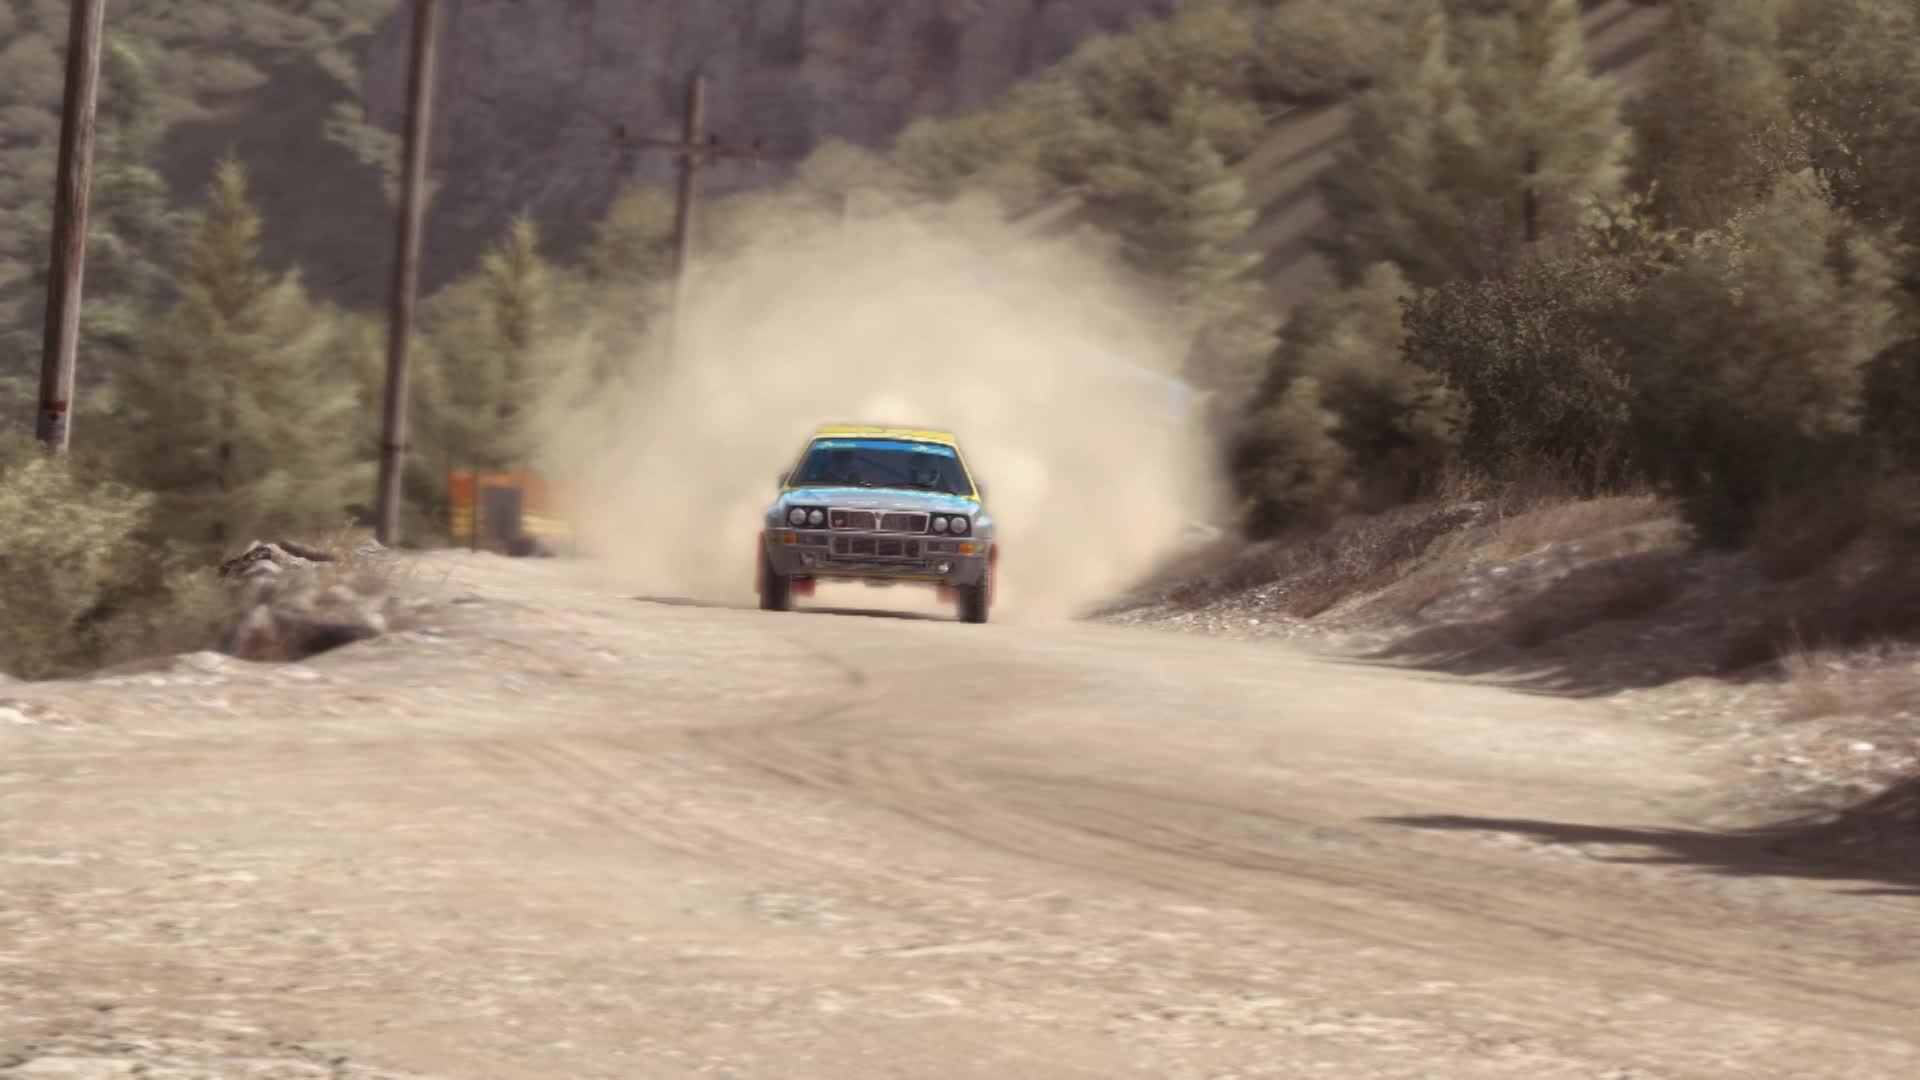 dirtgame, Greece Flick GIFs